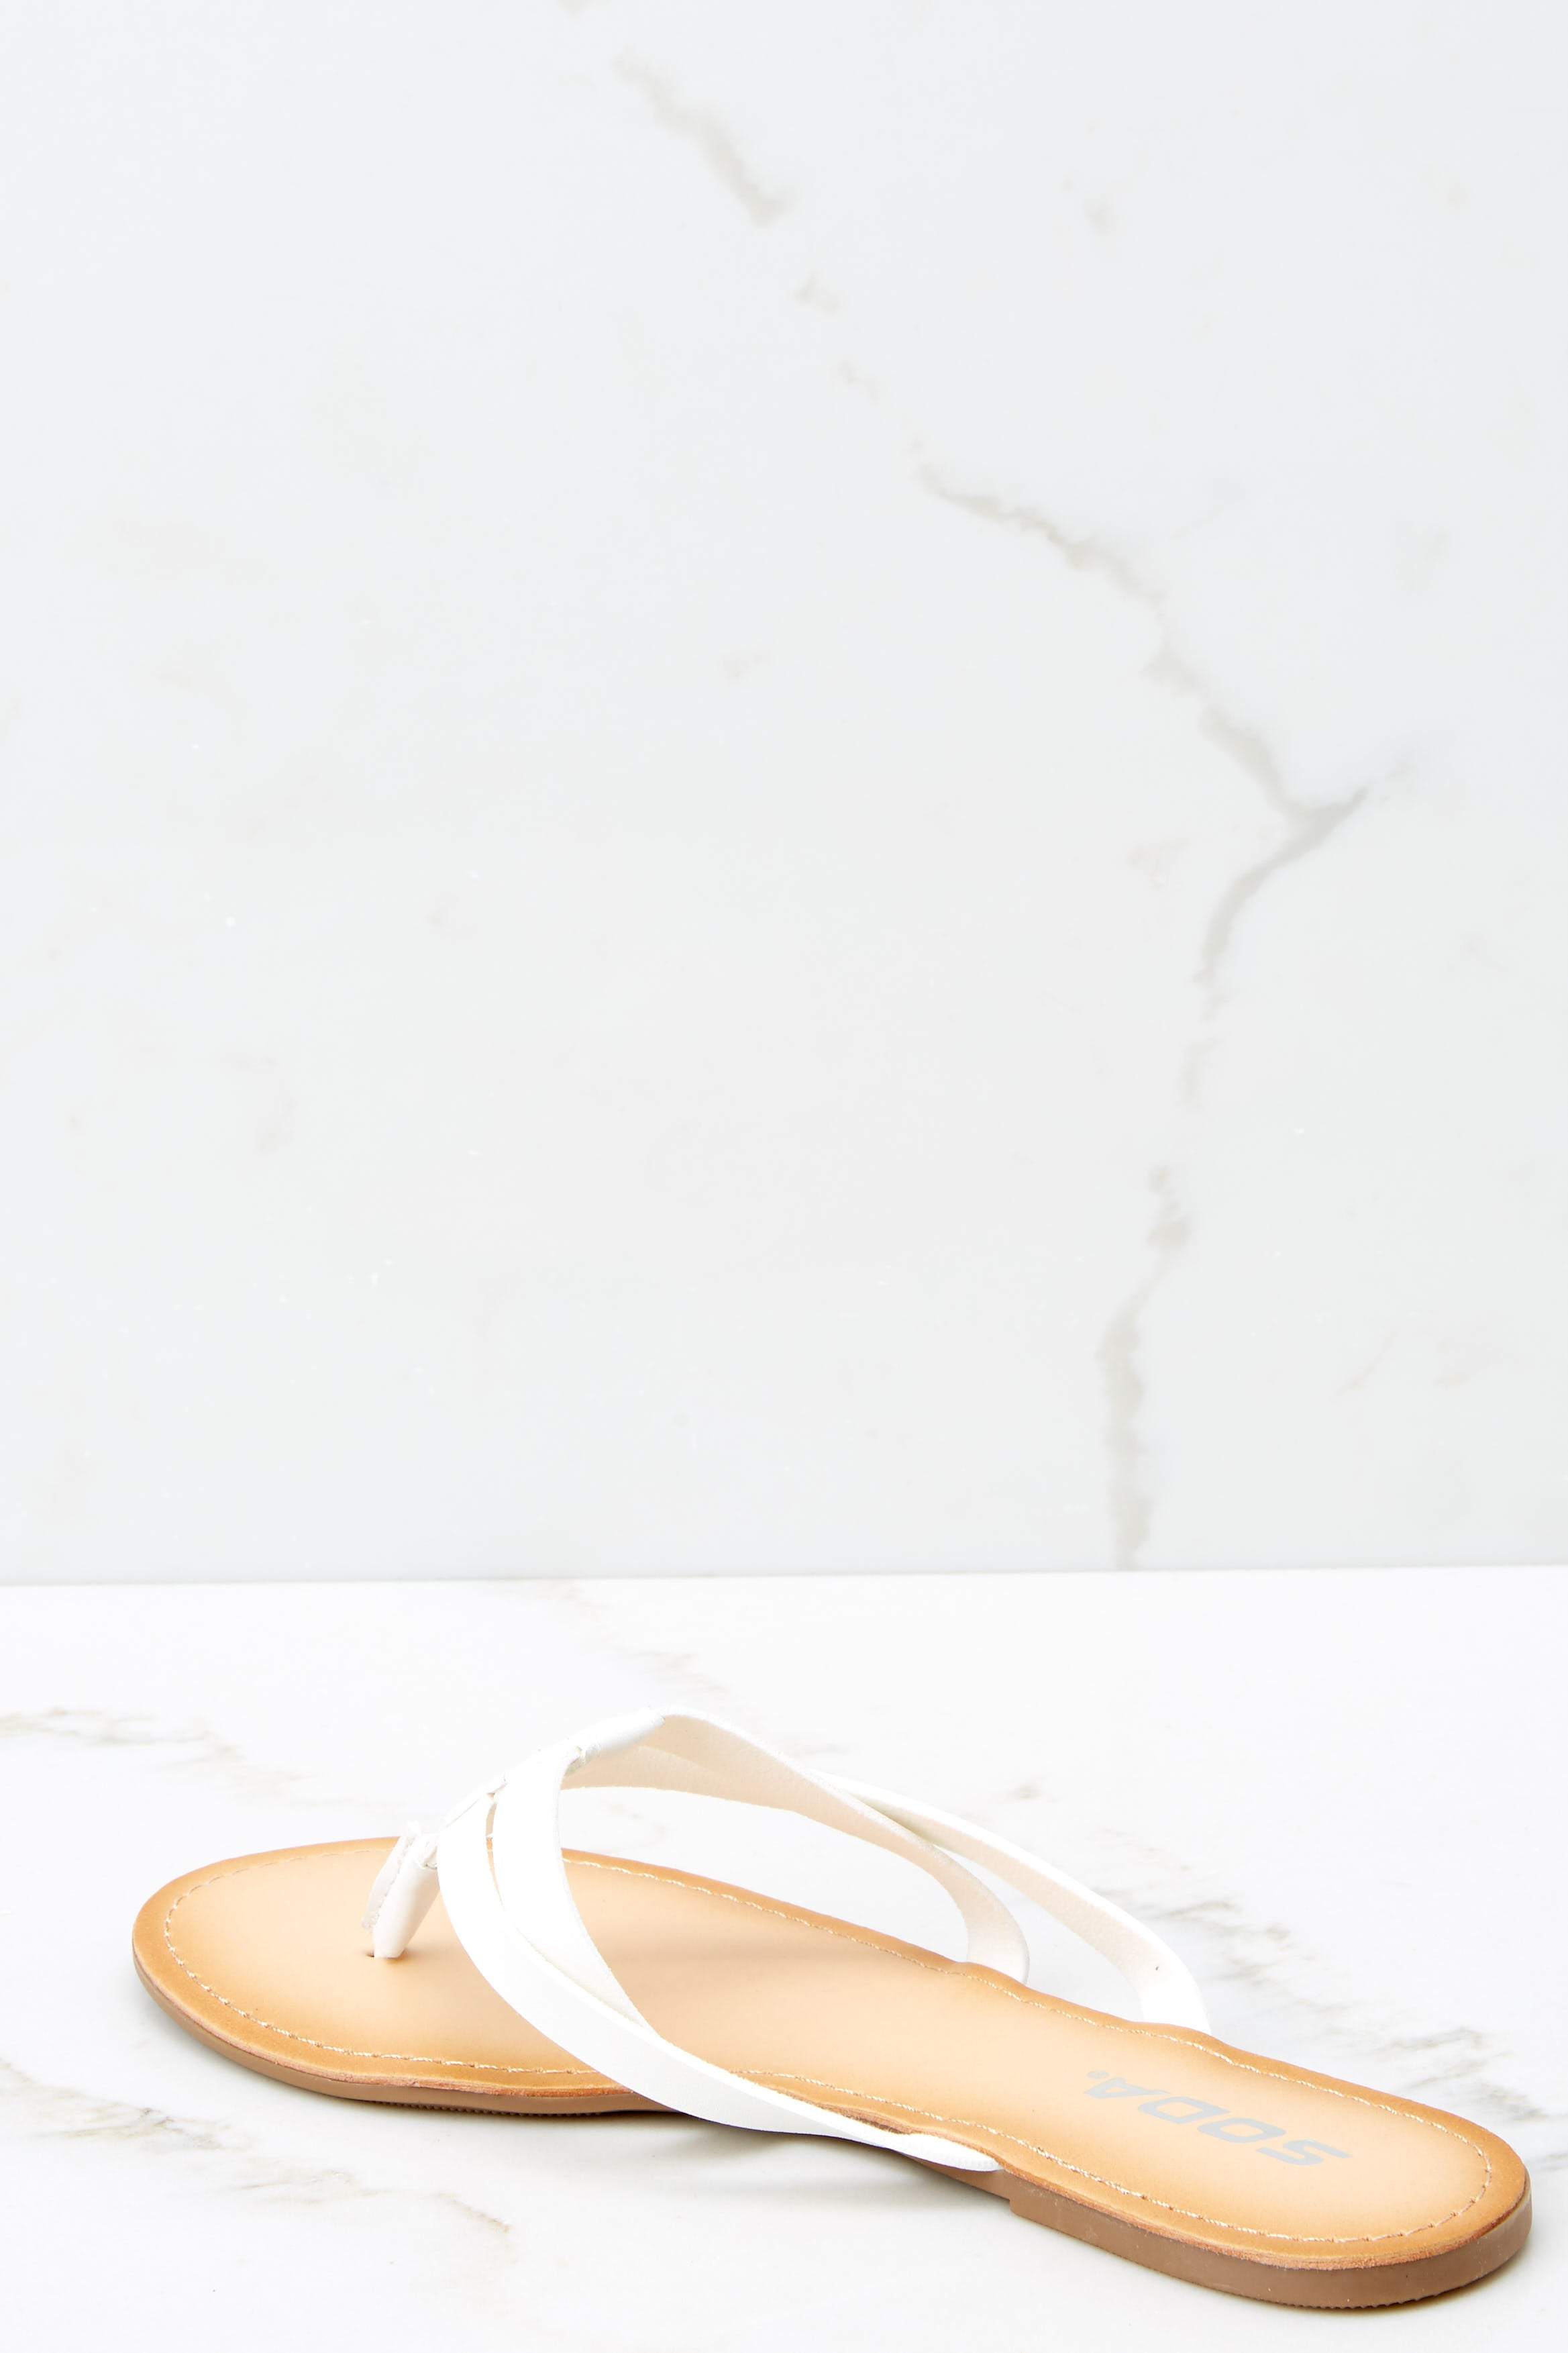 4 Chase The Thrill White Sandals at reddress.com